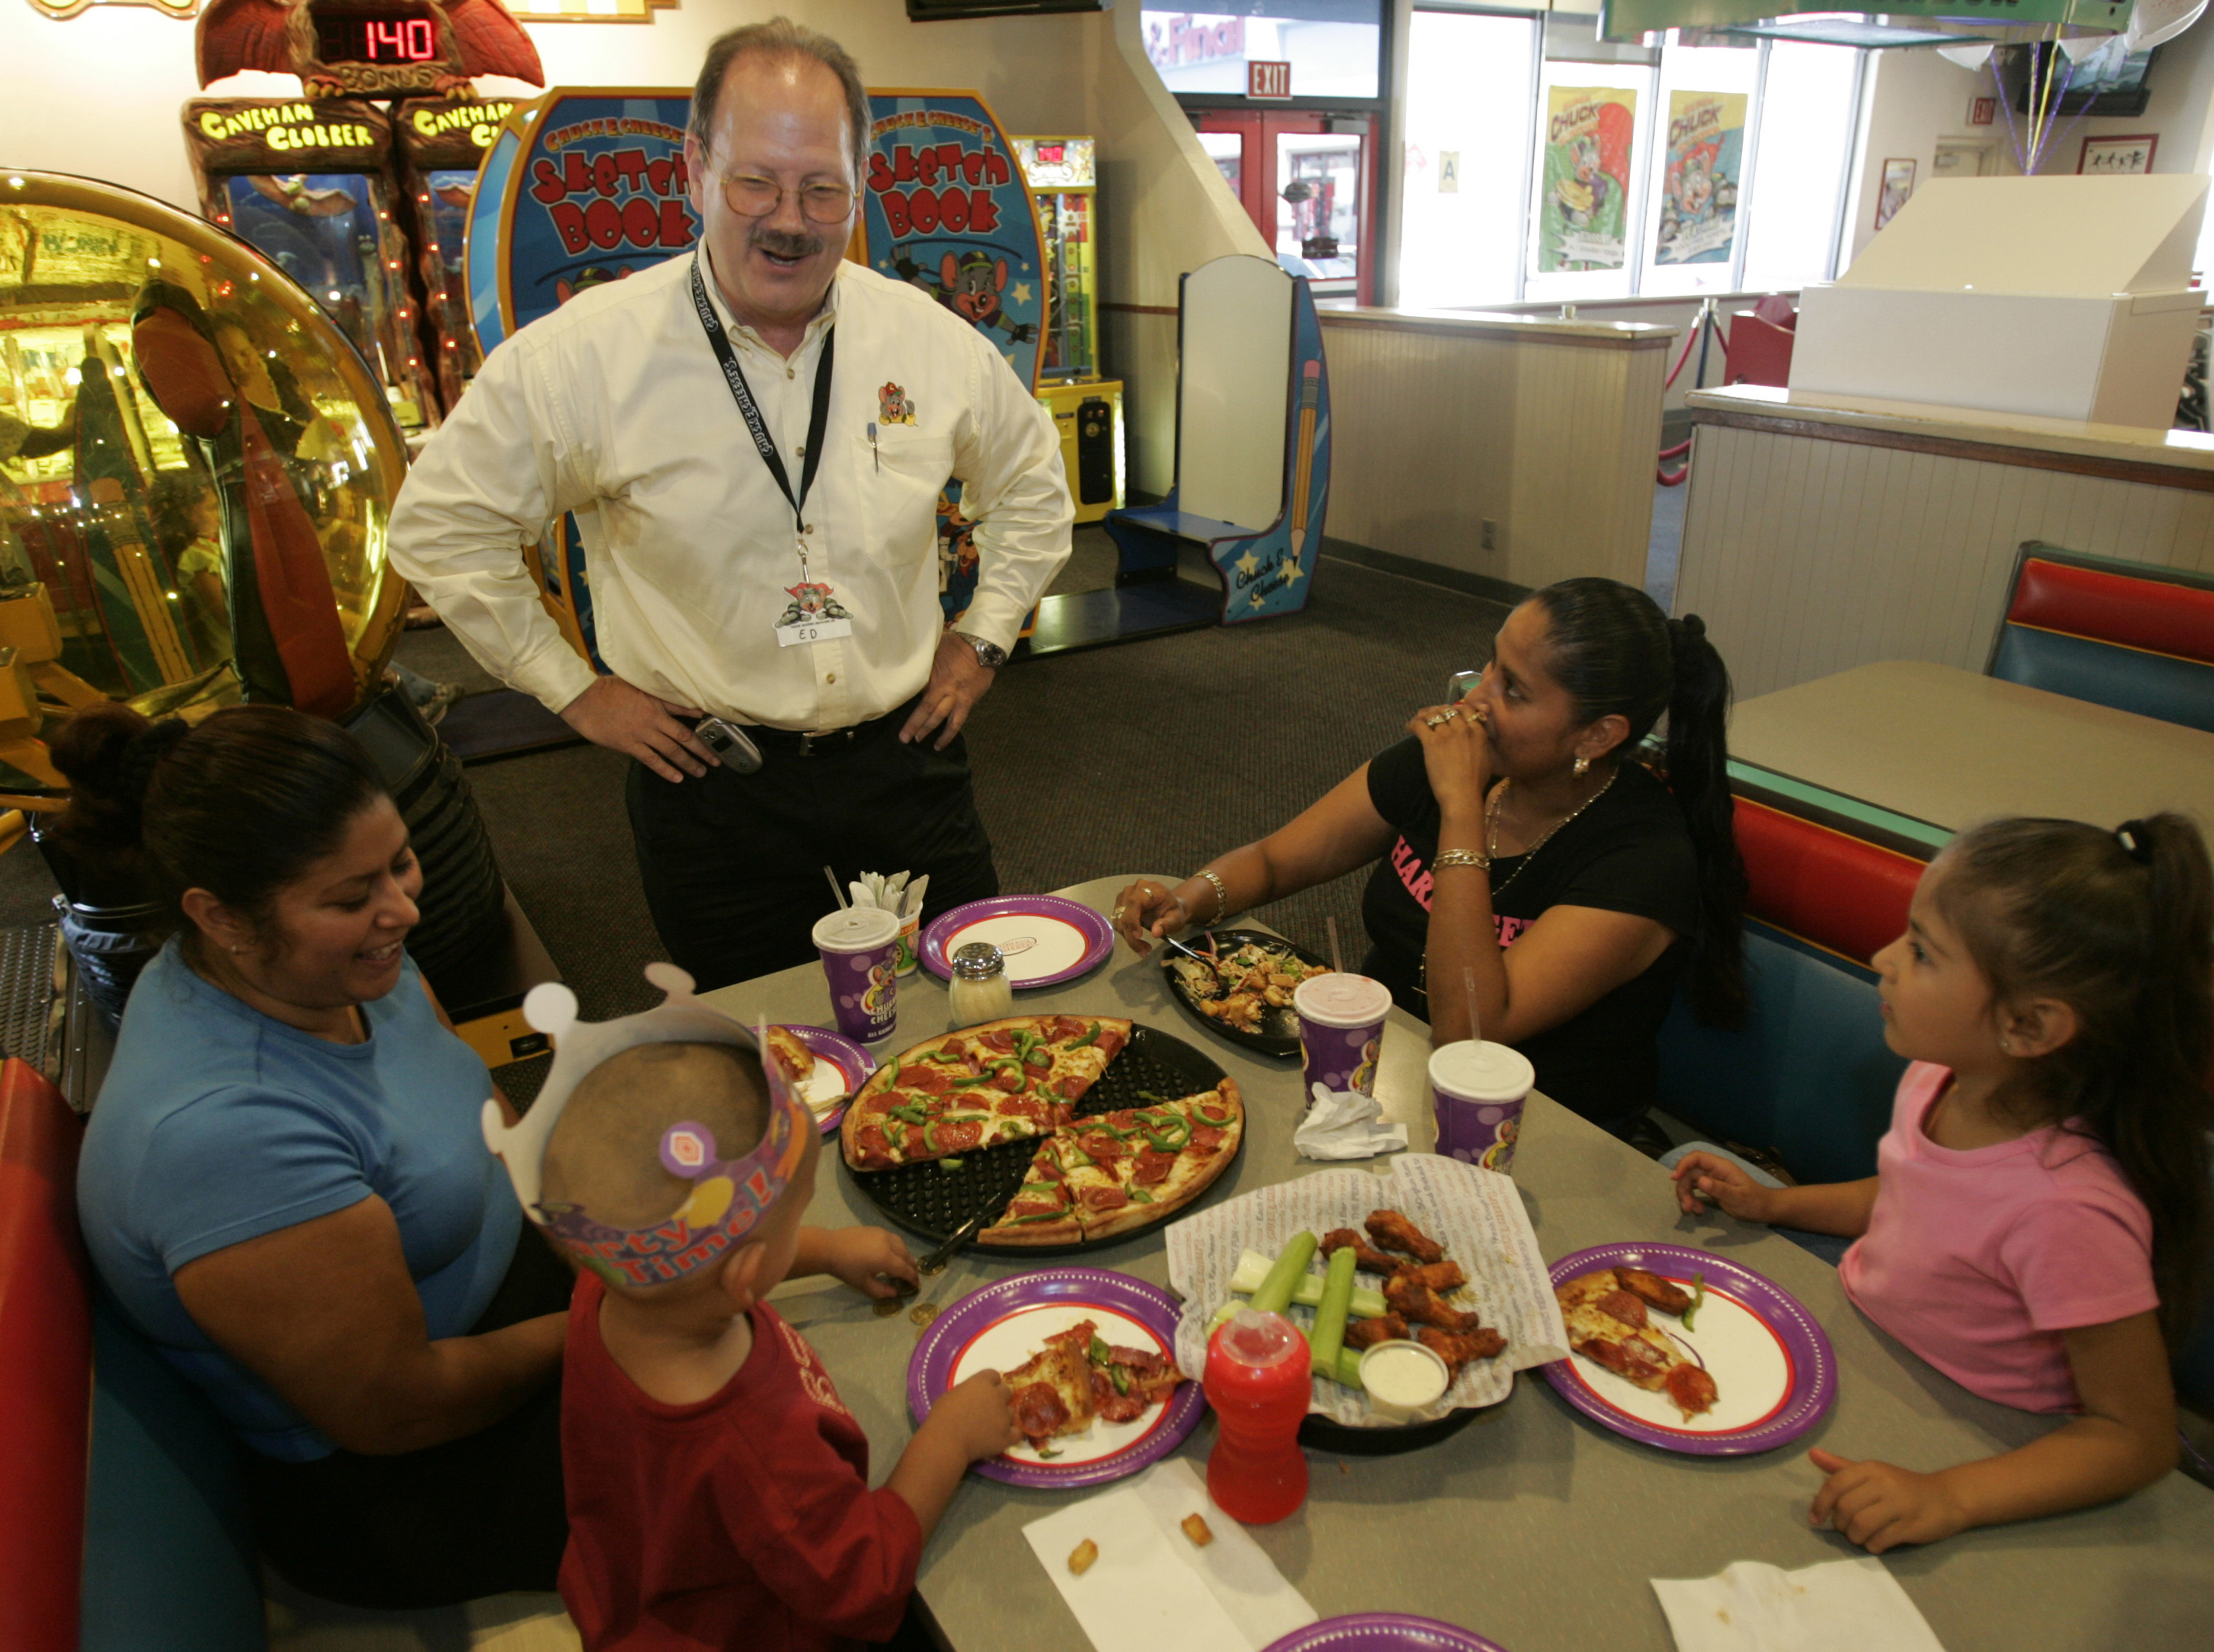 Ed Porter, Area Director for Chuck E. Cheese, chats with a family having a birthday party. This sto